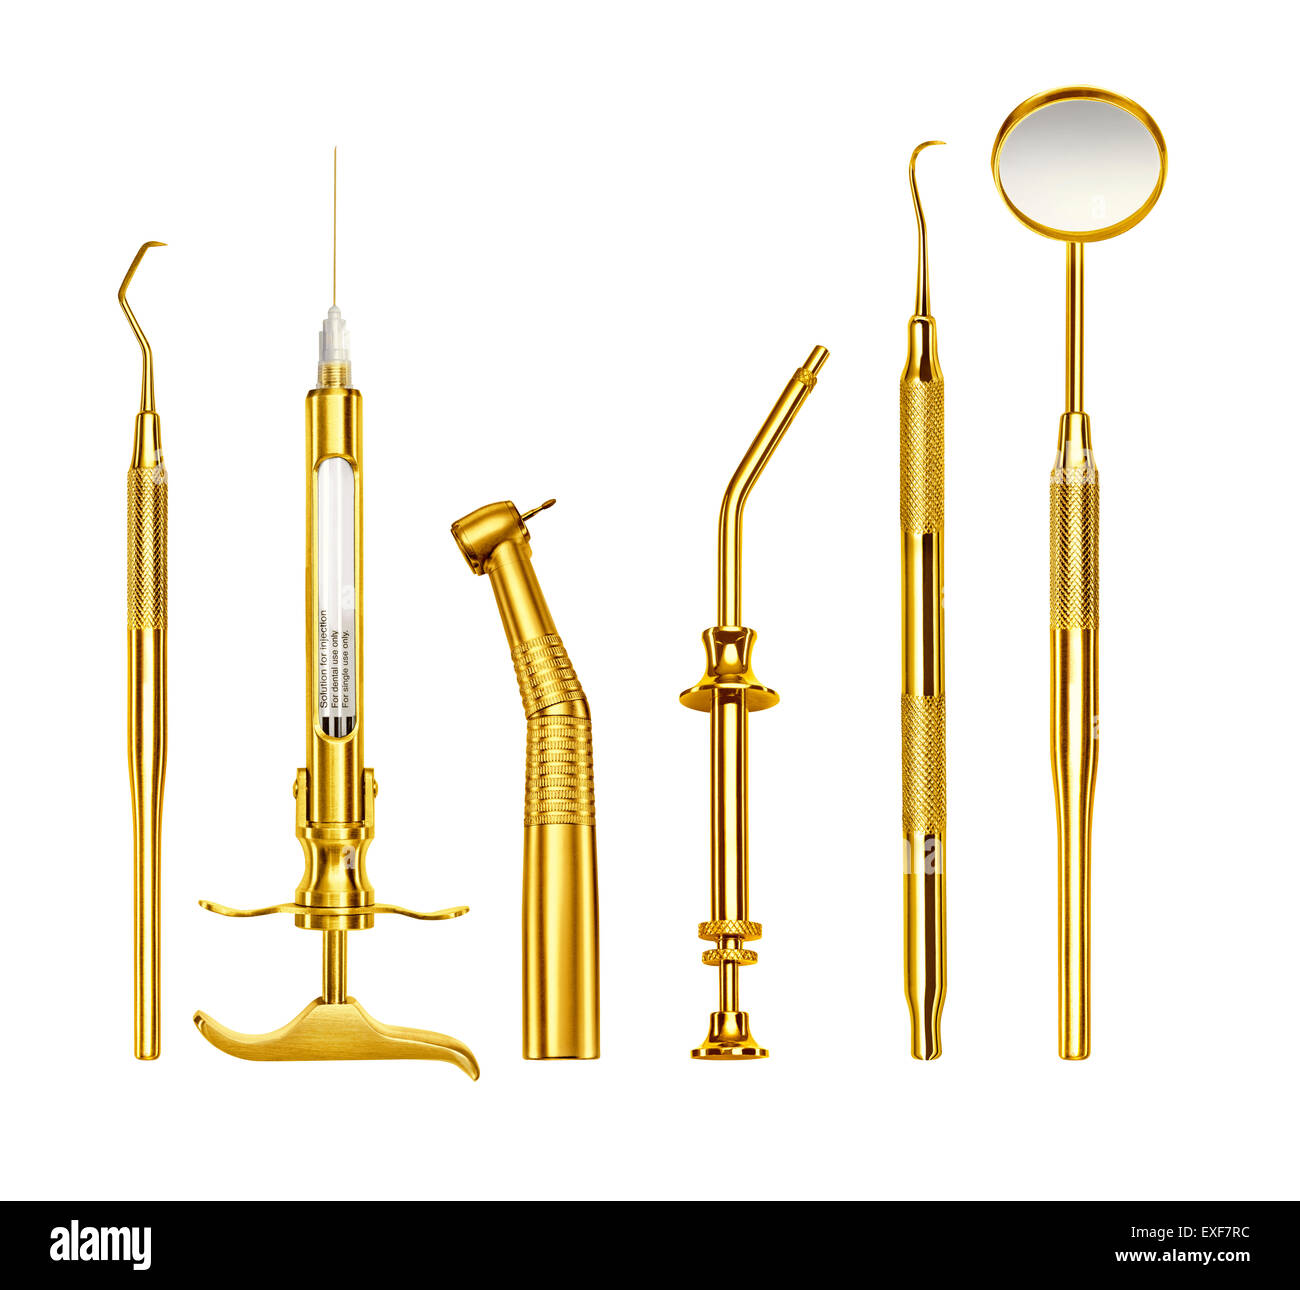 A row of gold dentist tools - Stock Image